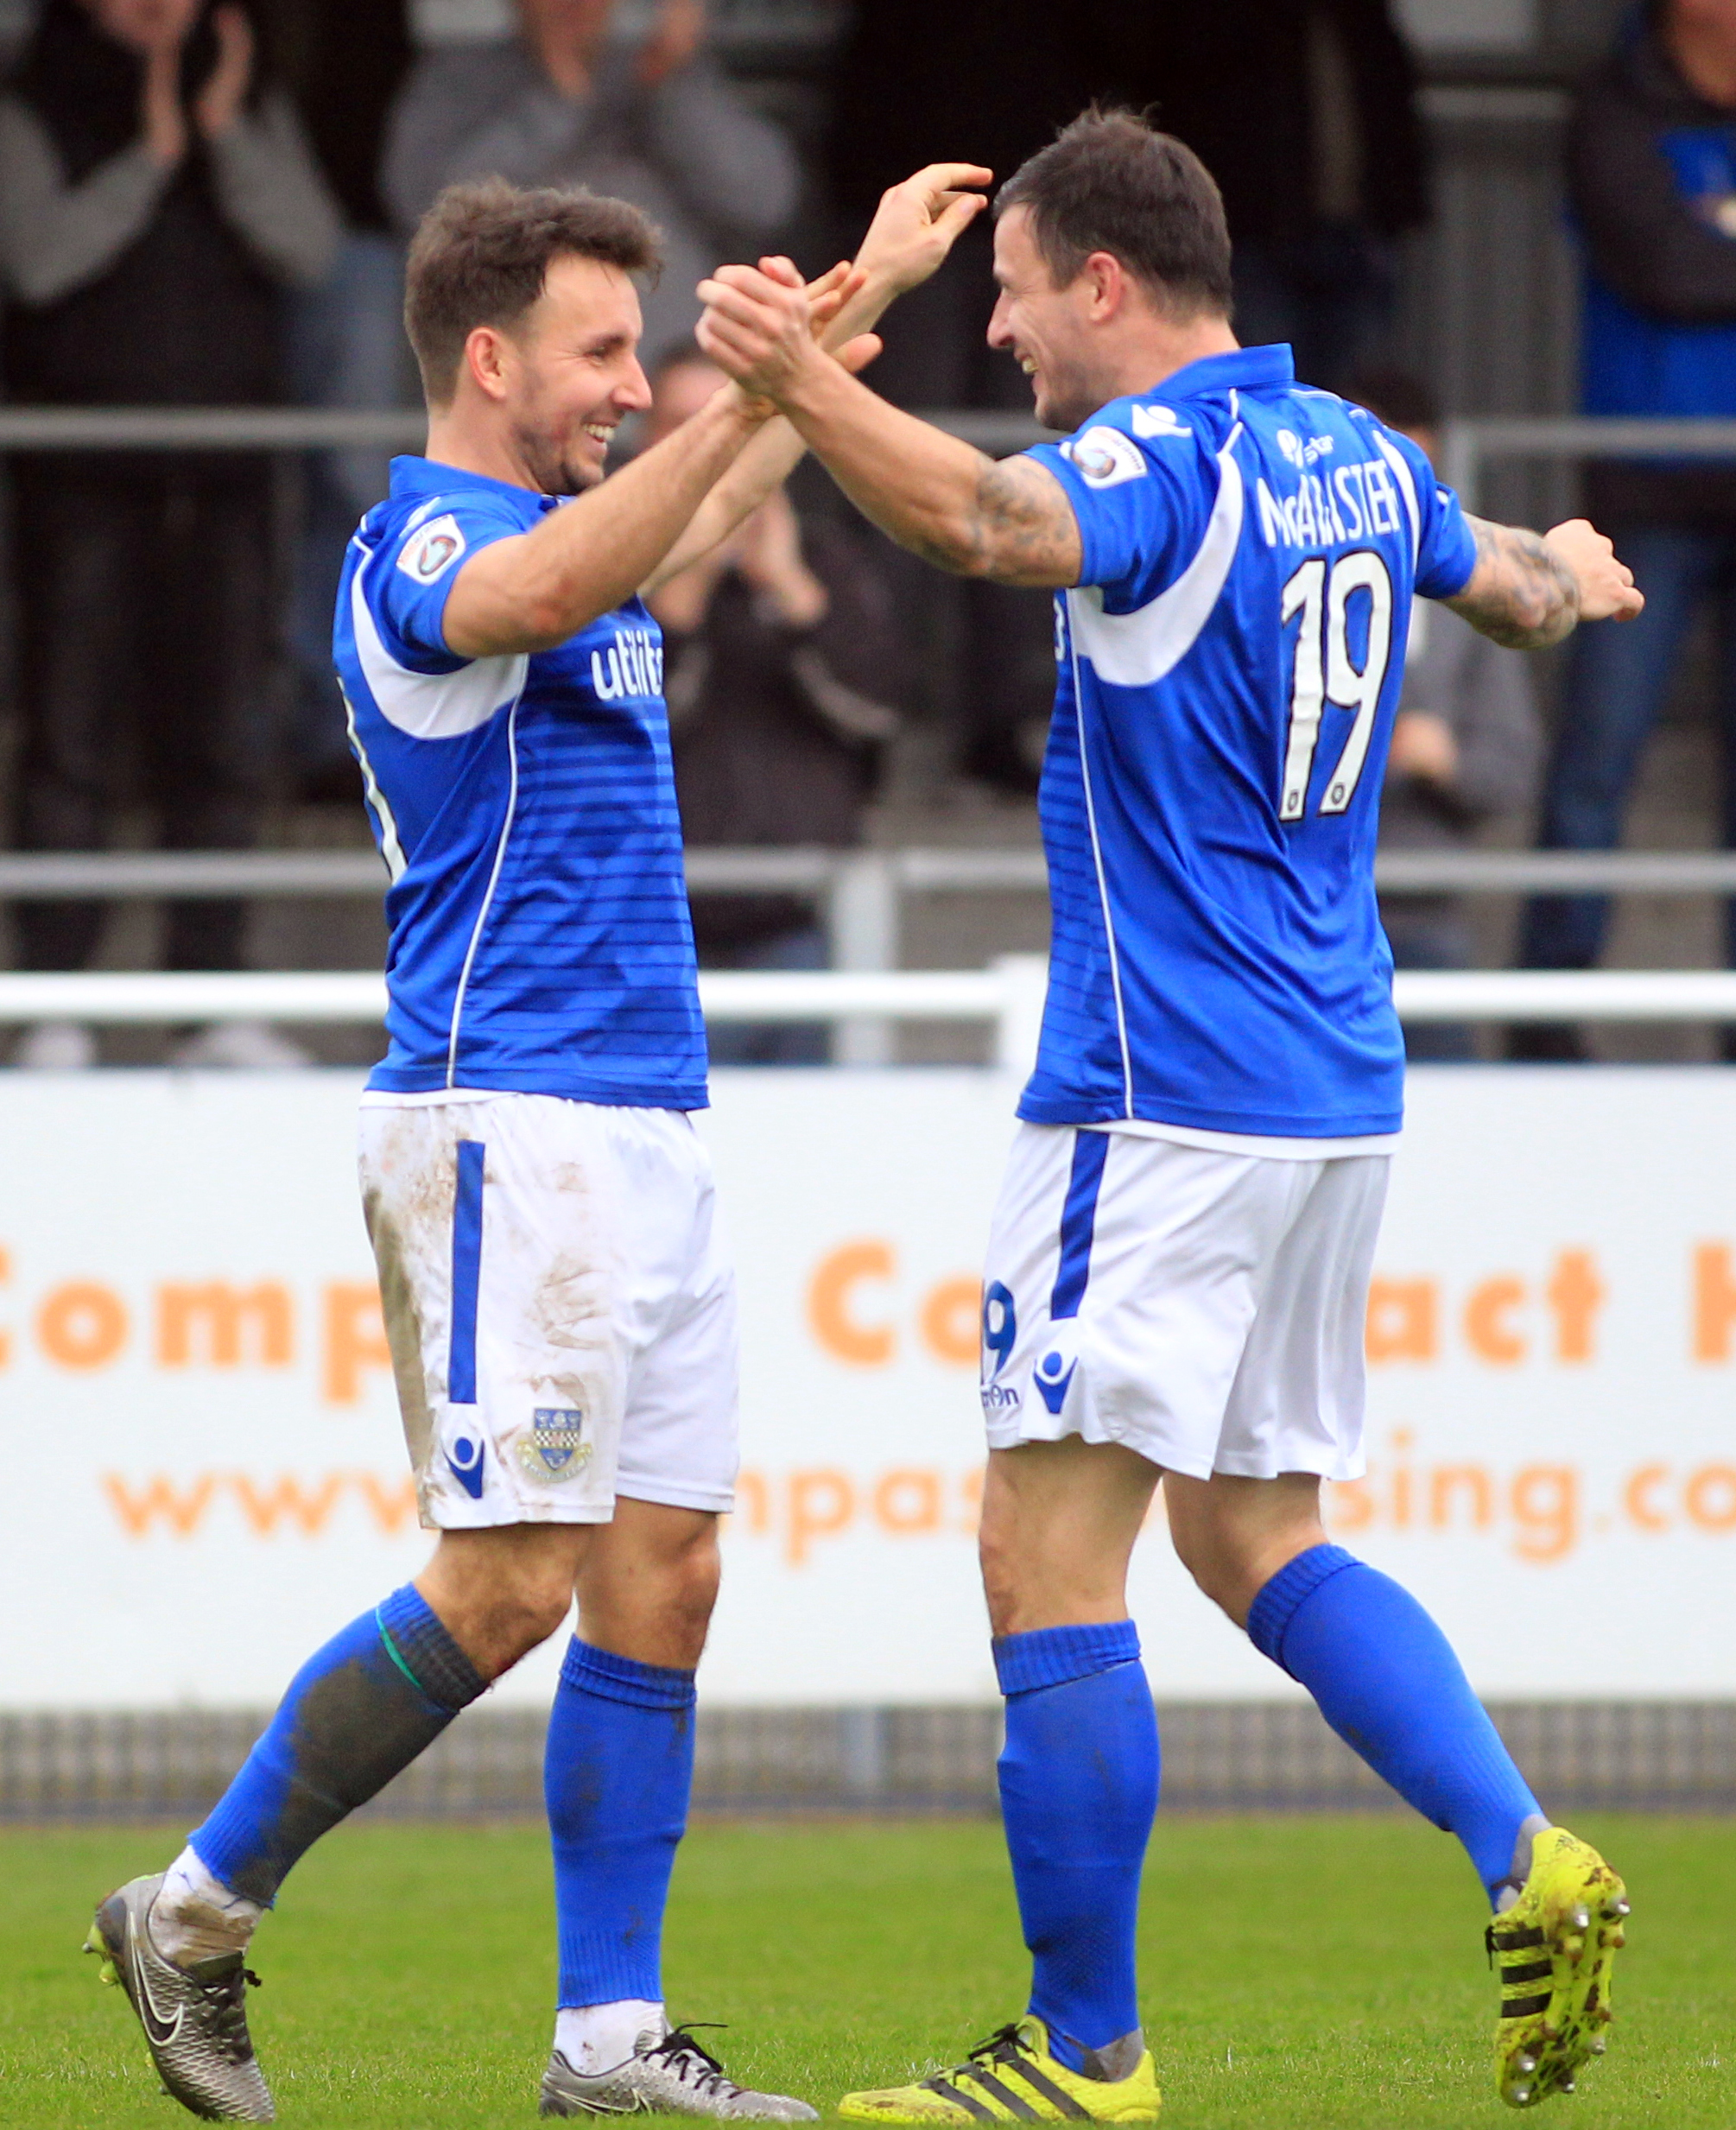 McAllister (right) and Tubbs celebrate an Eastleigh goal